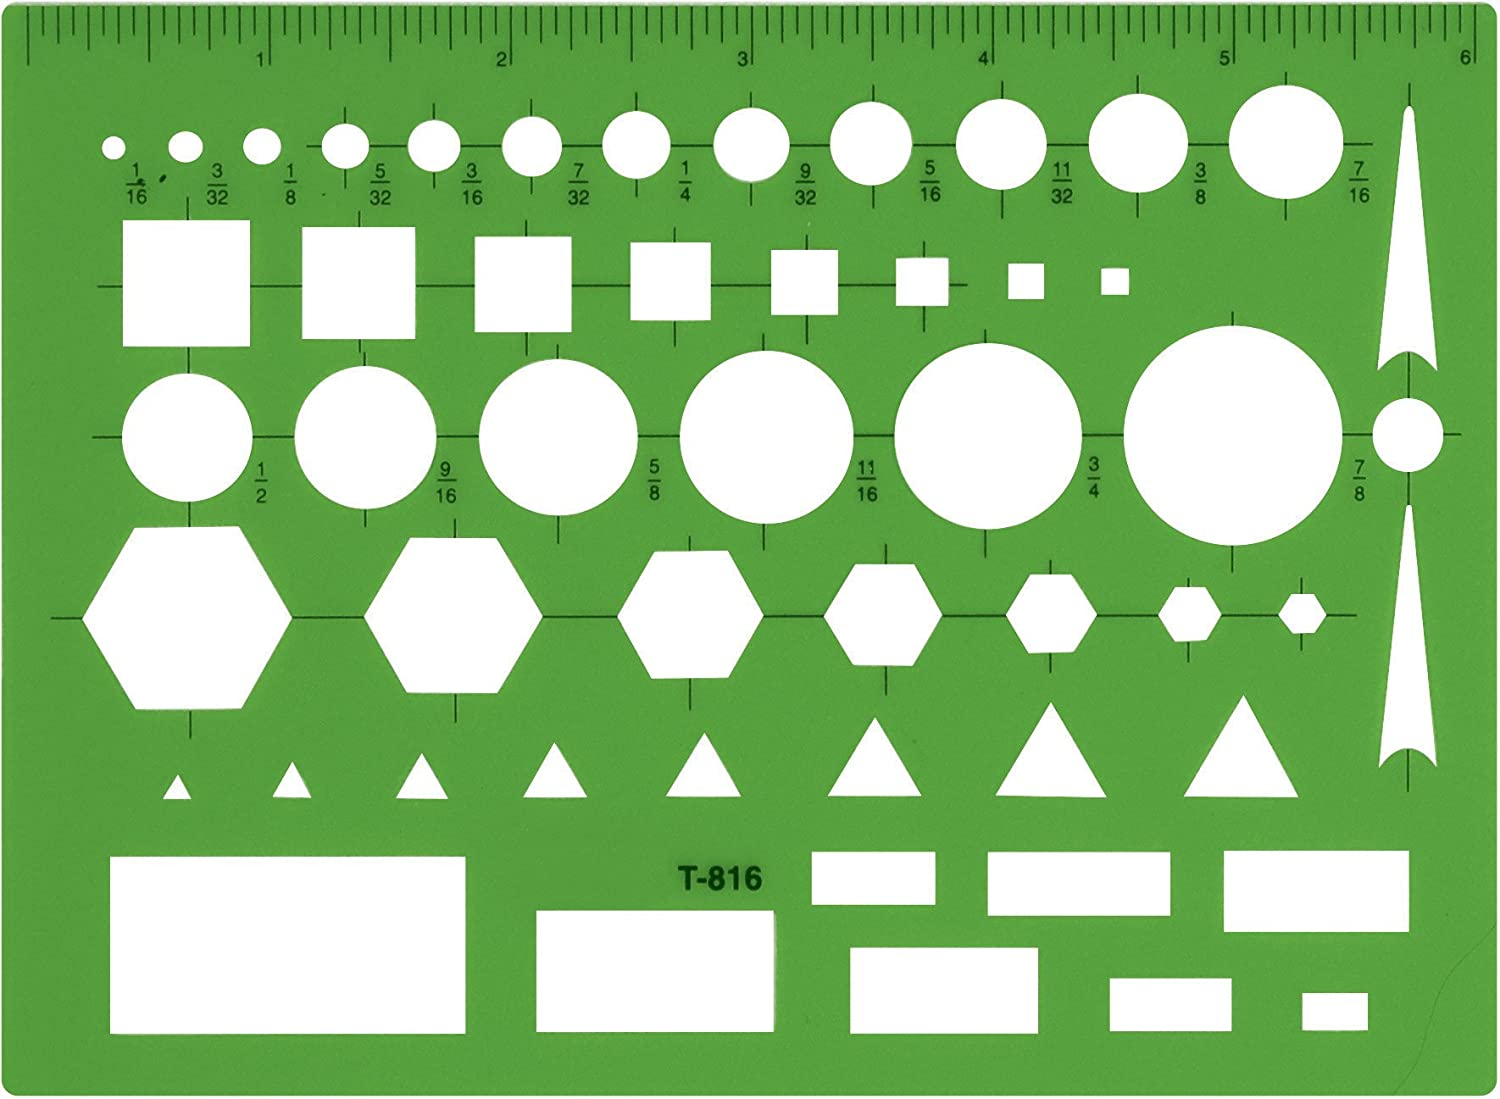 Westcott Technical All Purpose Drawing Template: Arts, Crafts & Sewing